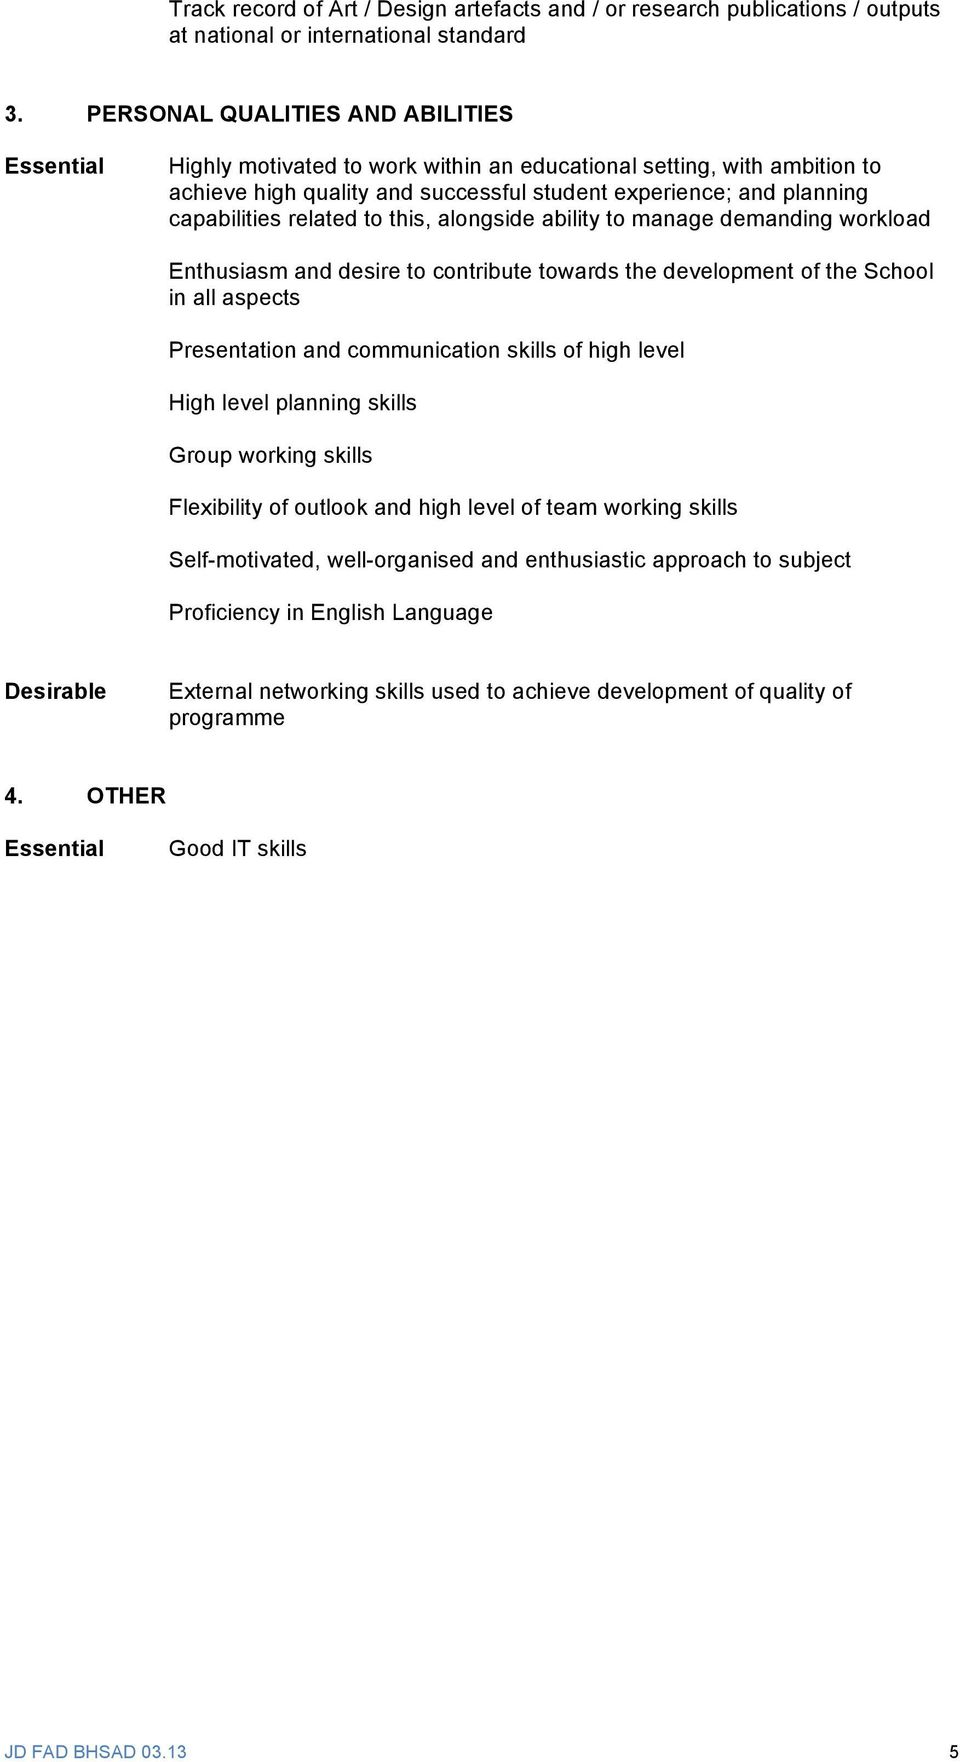 related to this, alongside ability to manage demanding workload Enthusiasm and desire to contribute towards the development of the School in all aspects Presentation and communication skills of high